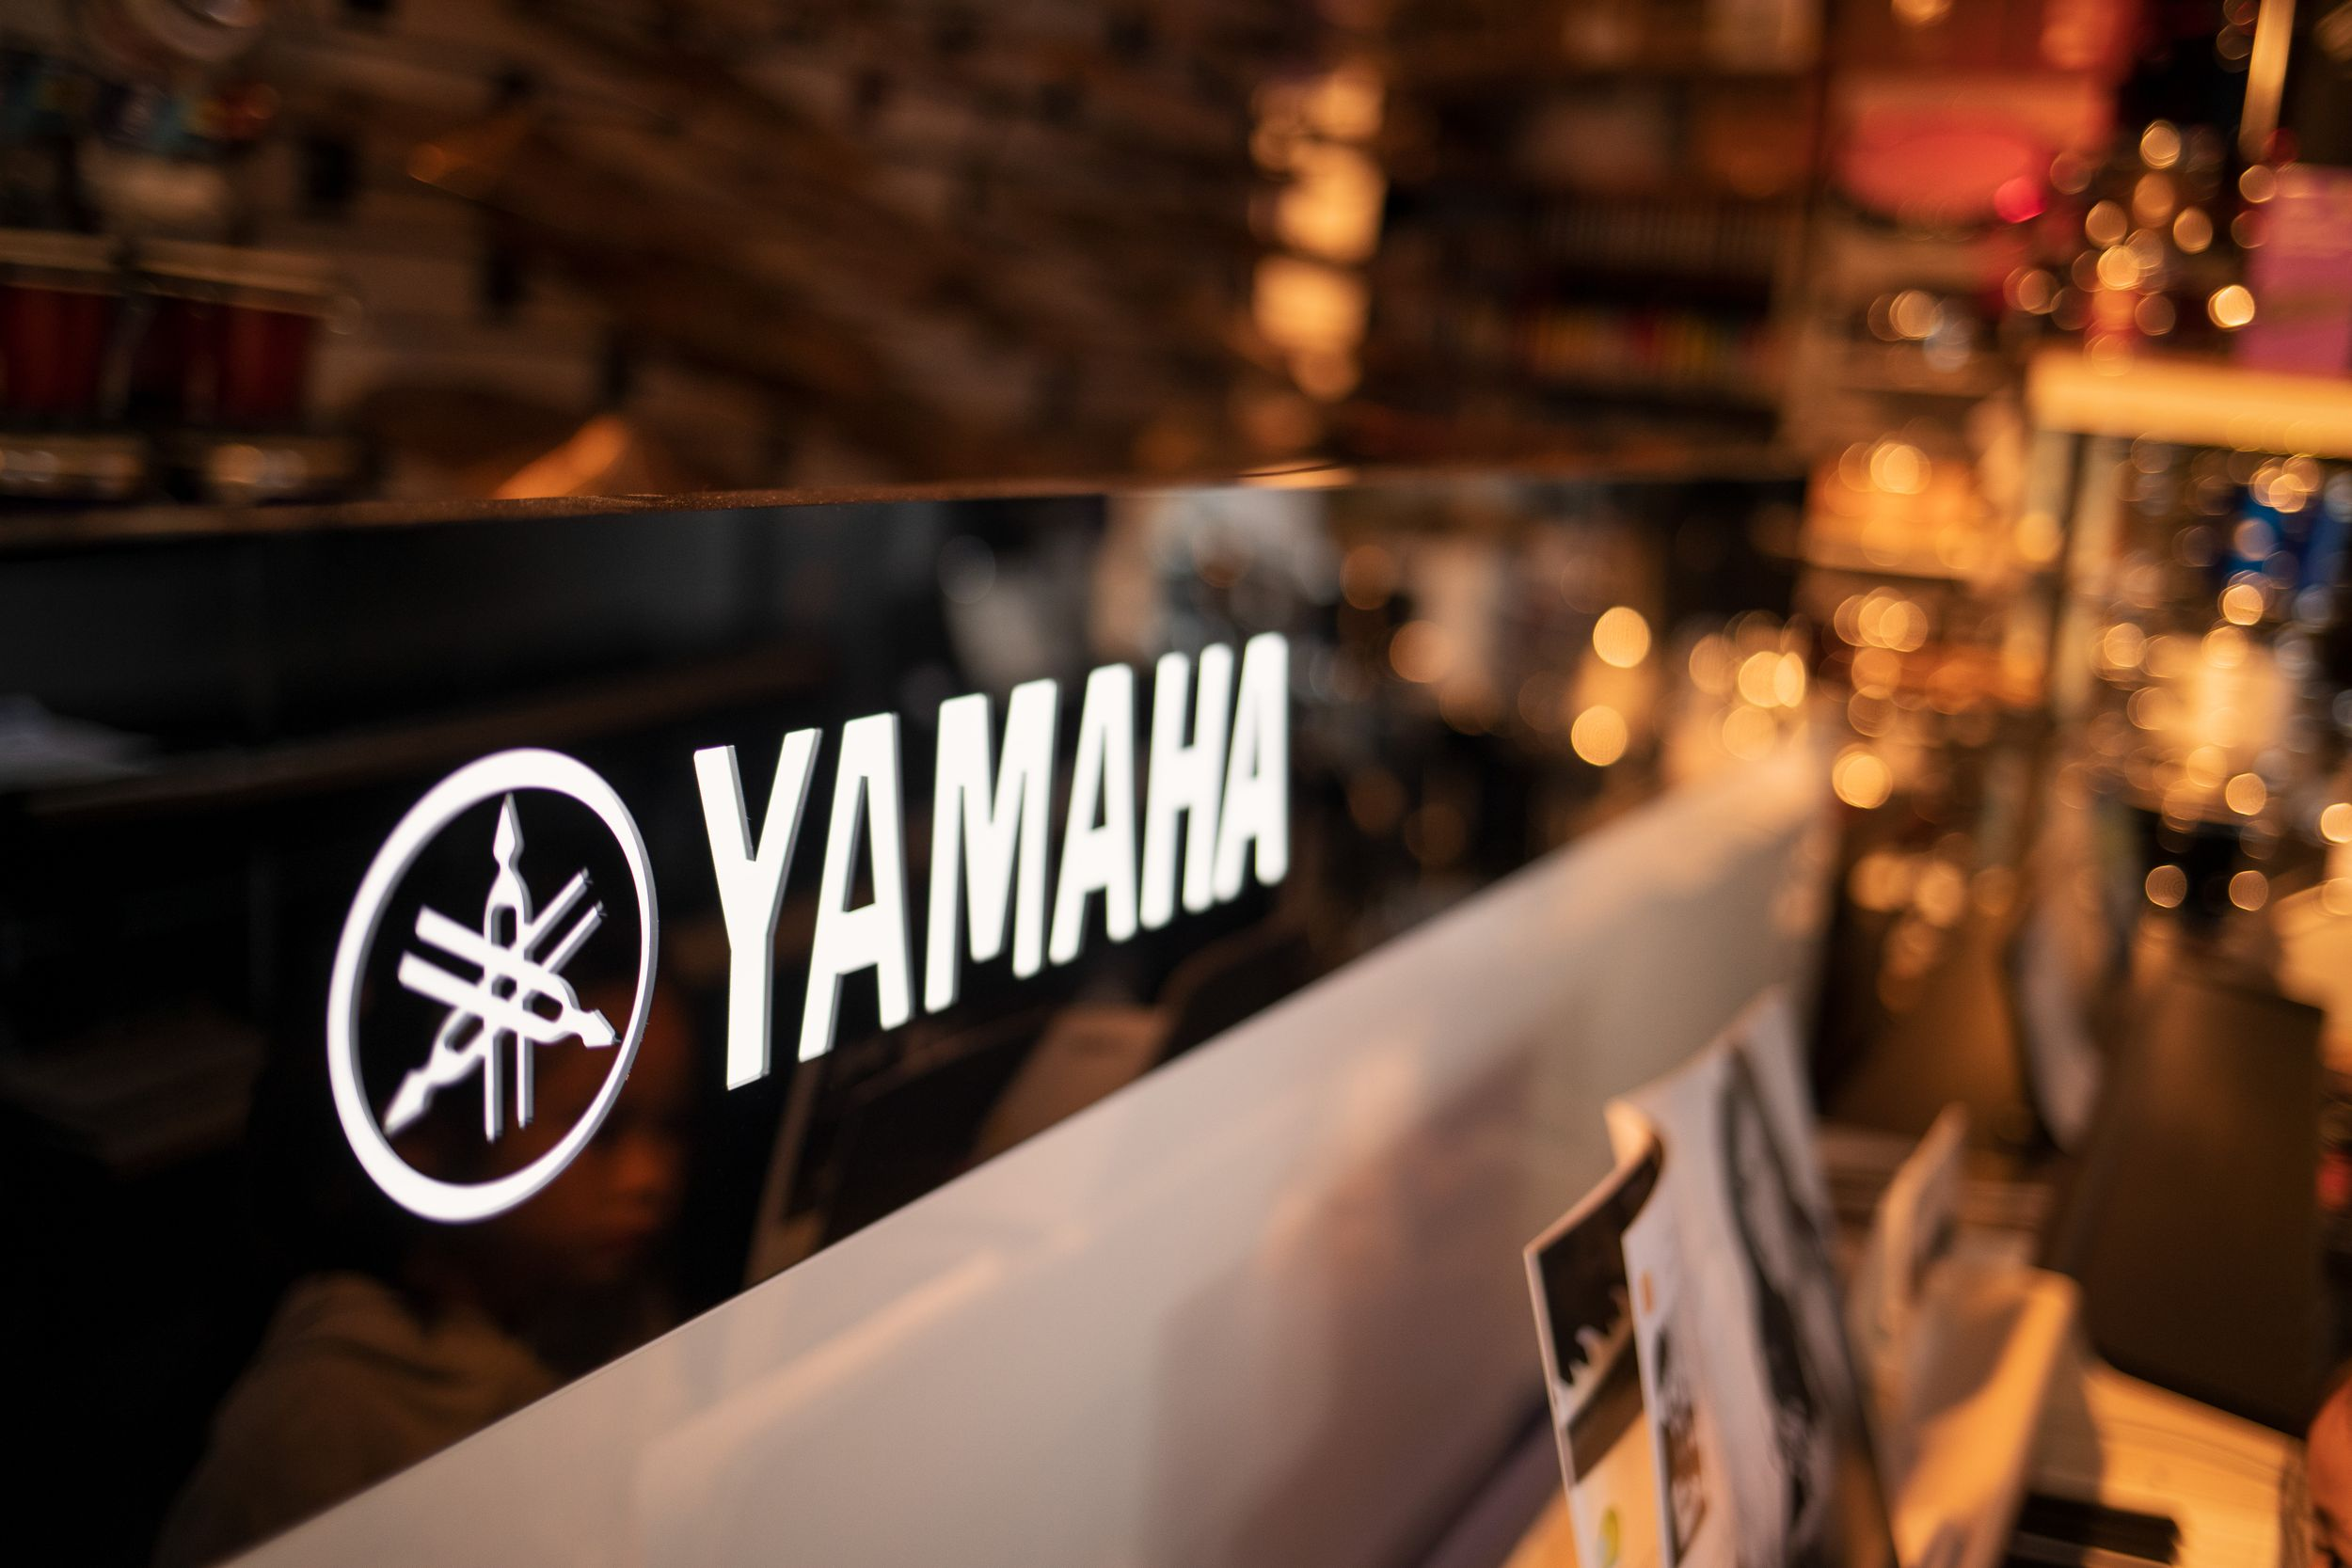 Yamaha branding in the showroom